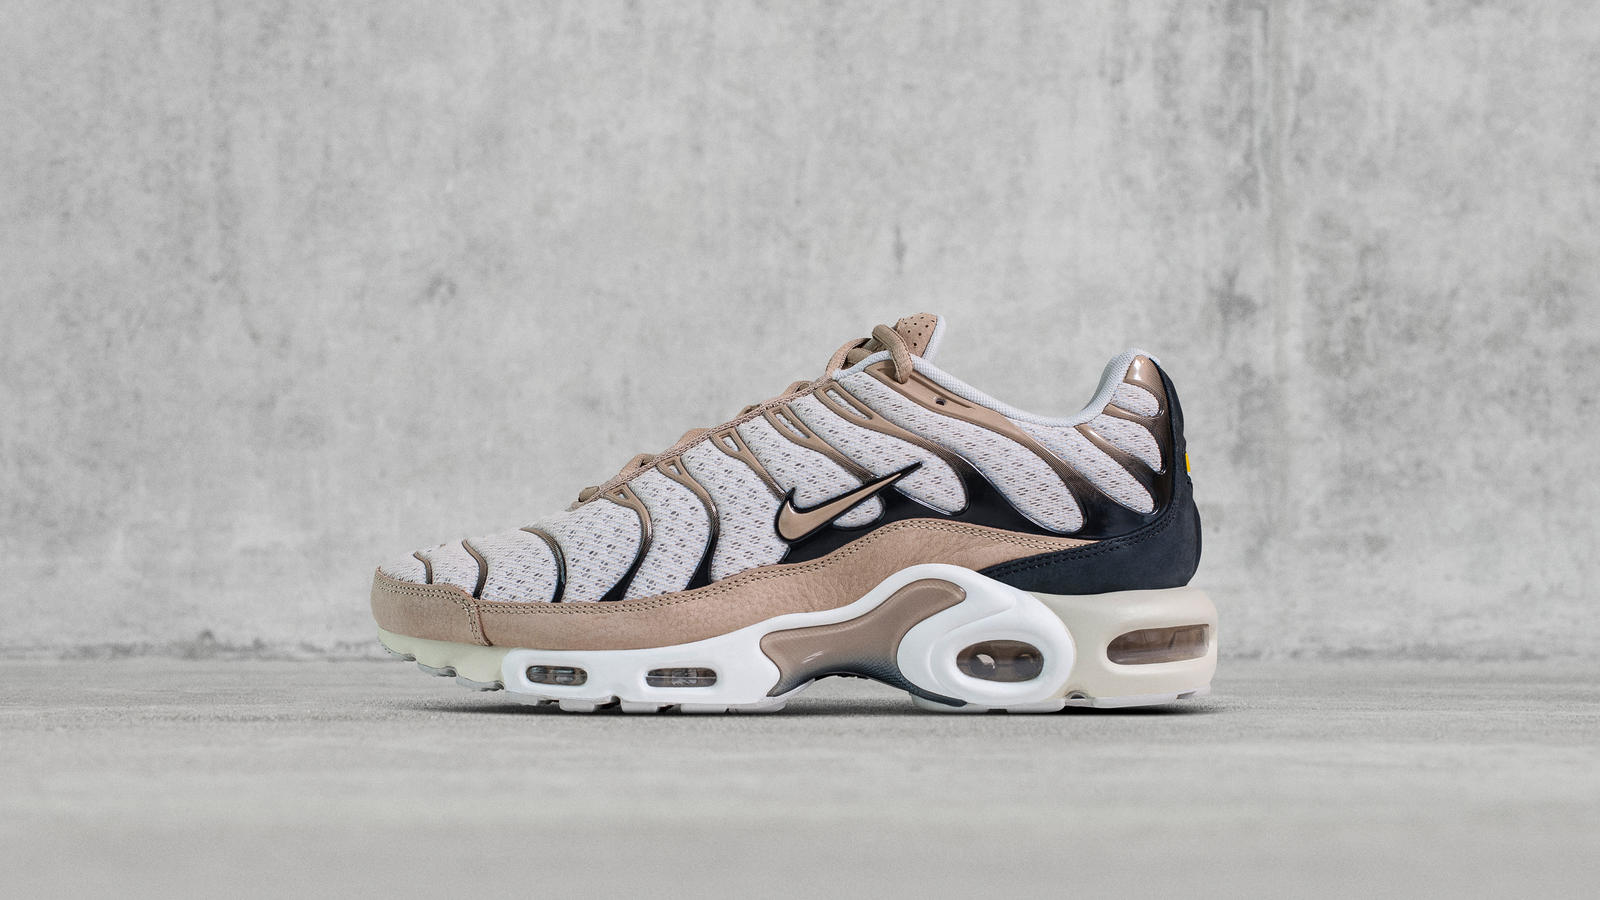 Nike Unveils Four NikeLab Air Max Plus Leather Builds - WearTesters